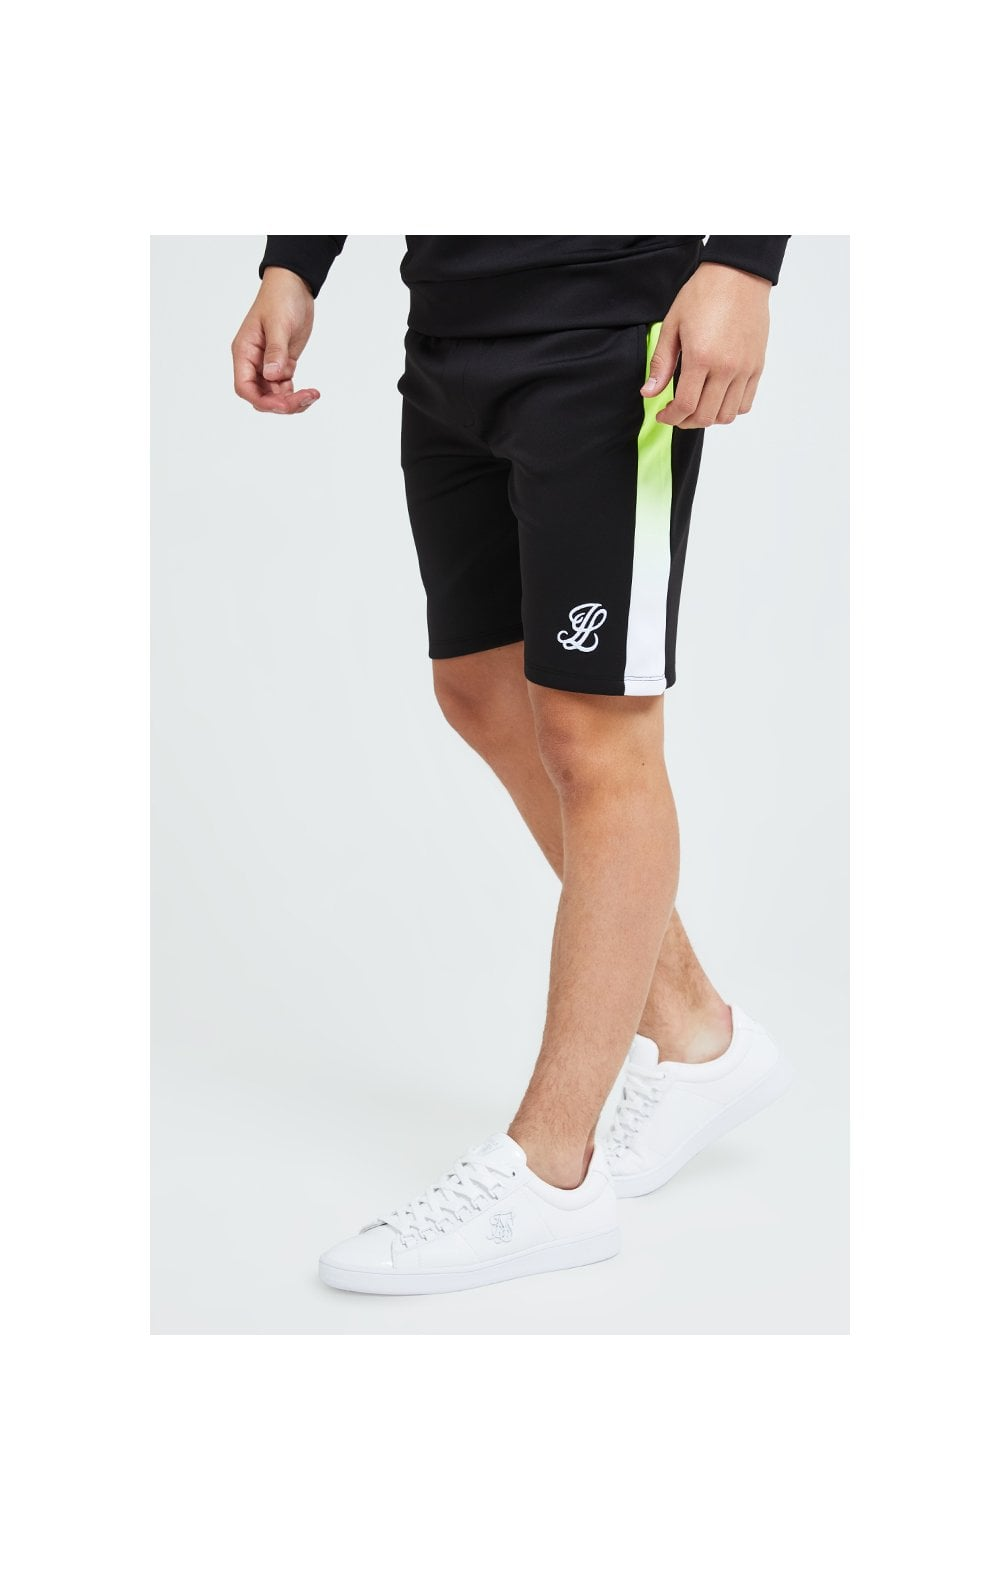 Load image into Gallery viewer, Illusive London Fade Panel Shorts - Black Neon